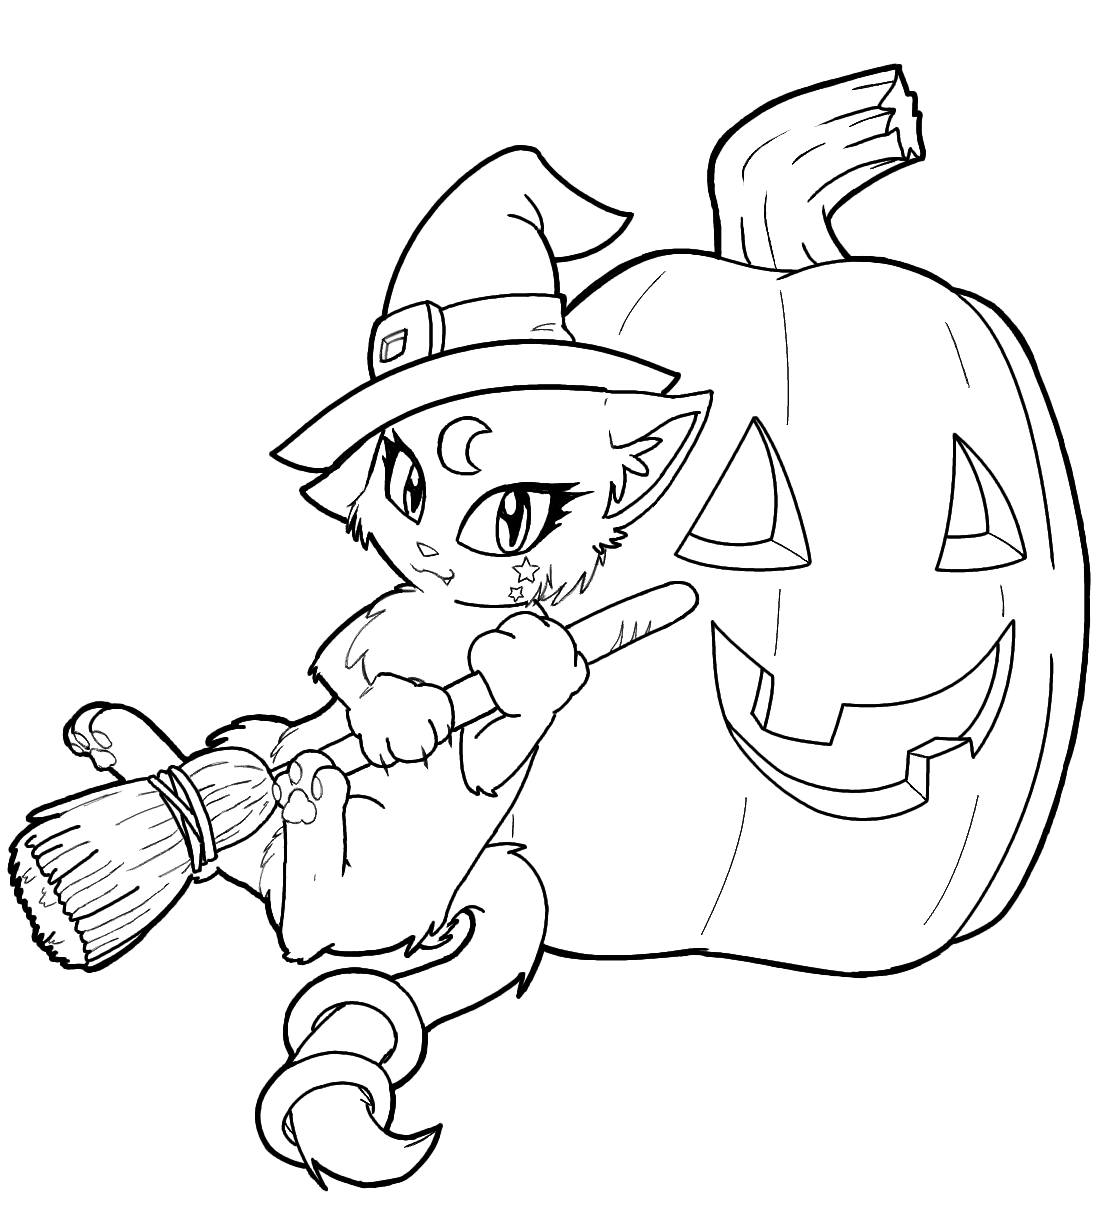 witches coloring pages printable witch coloring pages for kids cool2bkids pages witches coloring